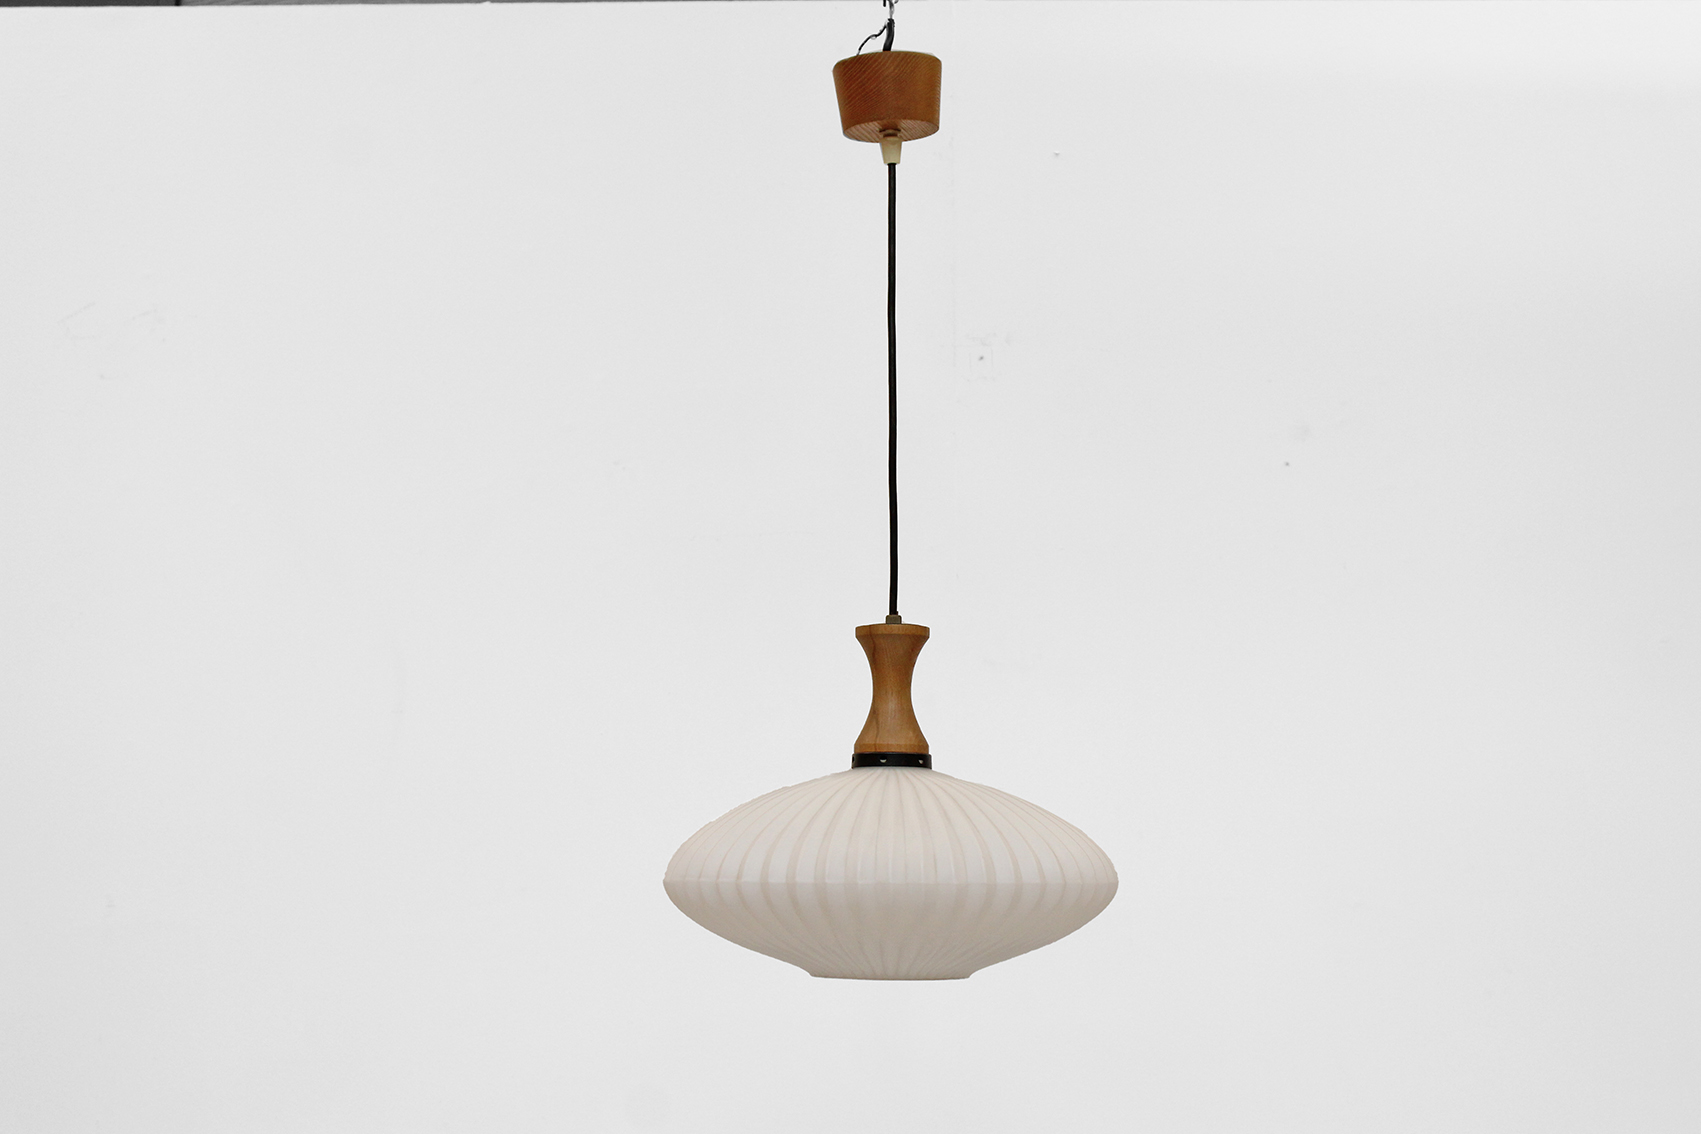 Fifties lamp